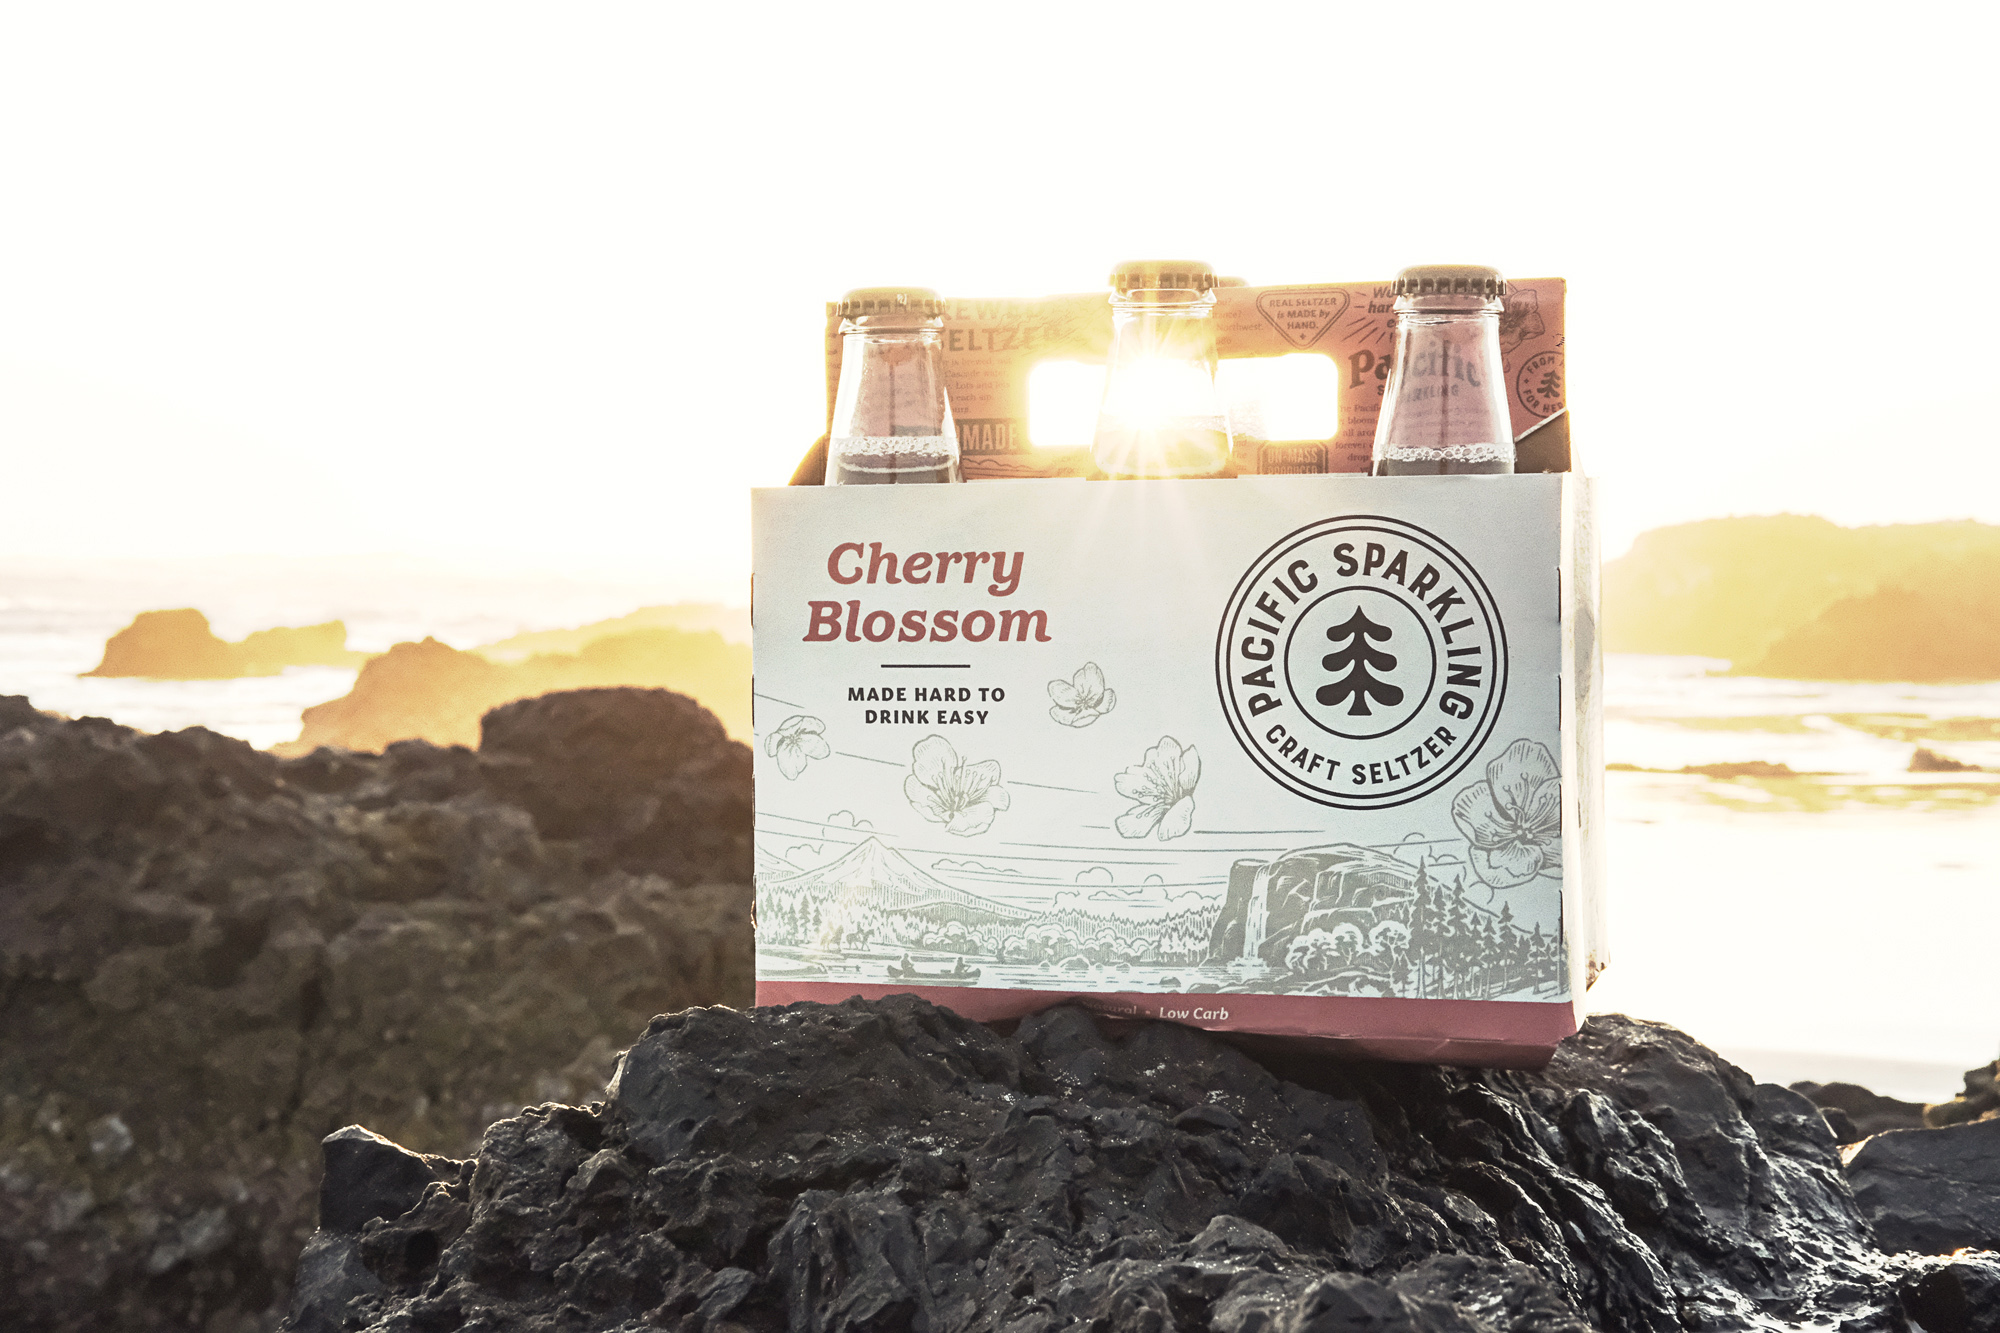 image of Pacific Sparkling Cherry Blossom courtesy of Pacific Sparkling/Ninkasi Brewing